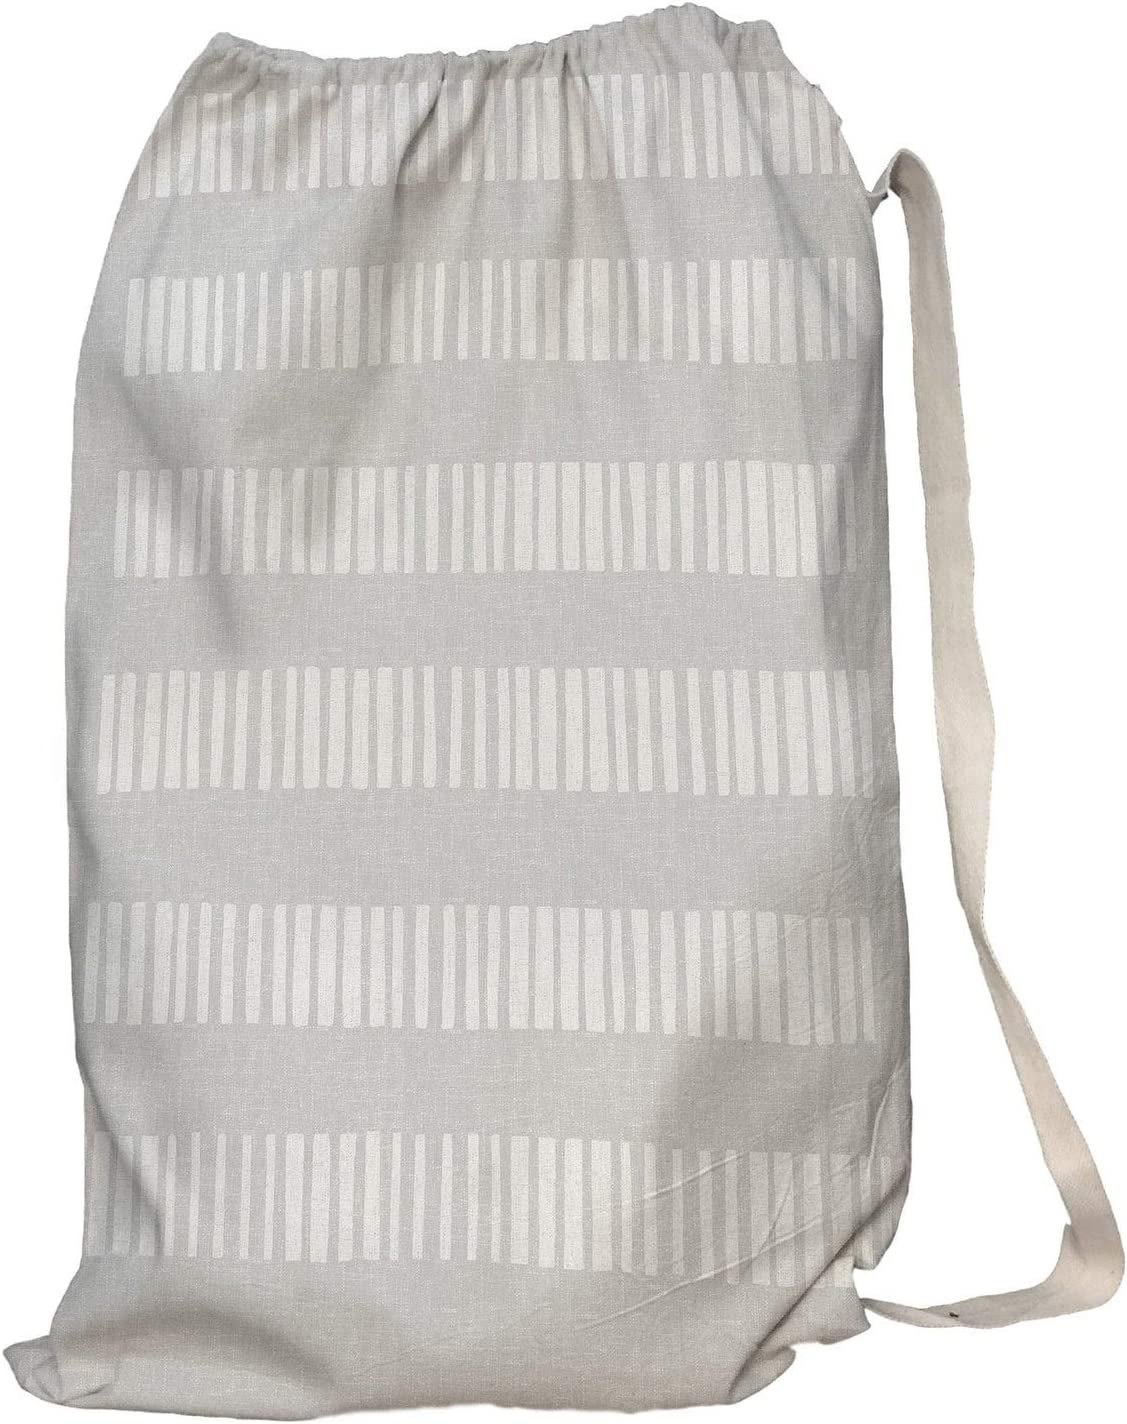 free shipping Unknown1 Selling Laundry Stripe Grey Bag Polyeste 28